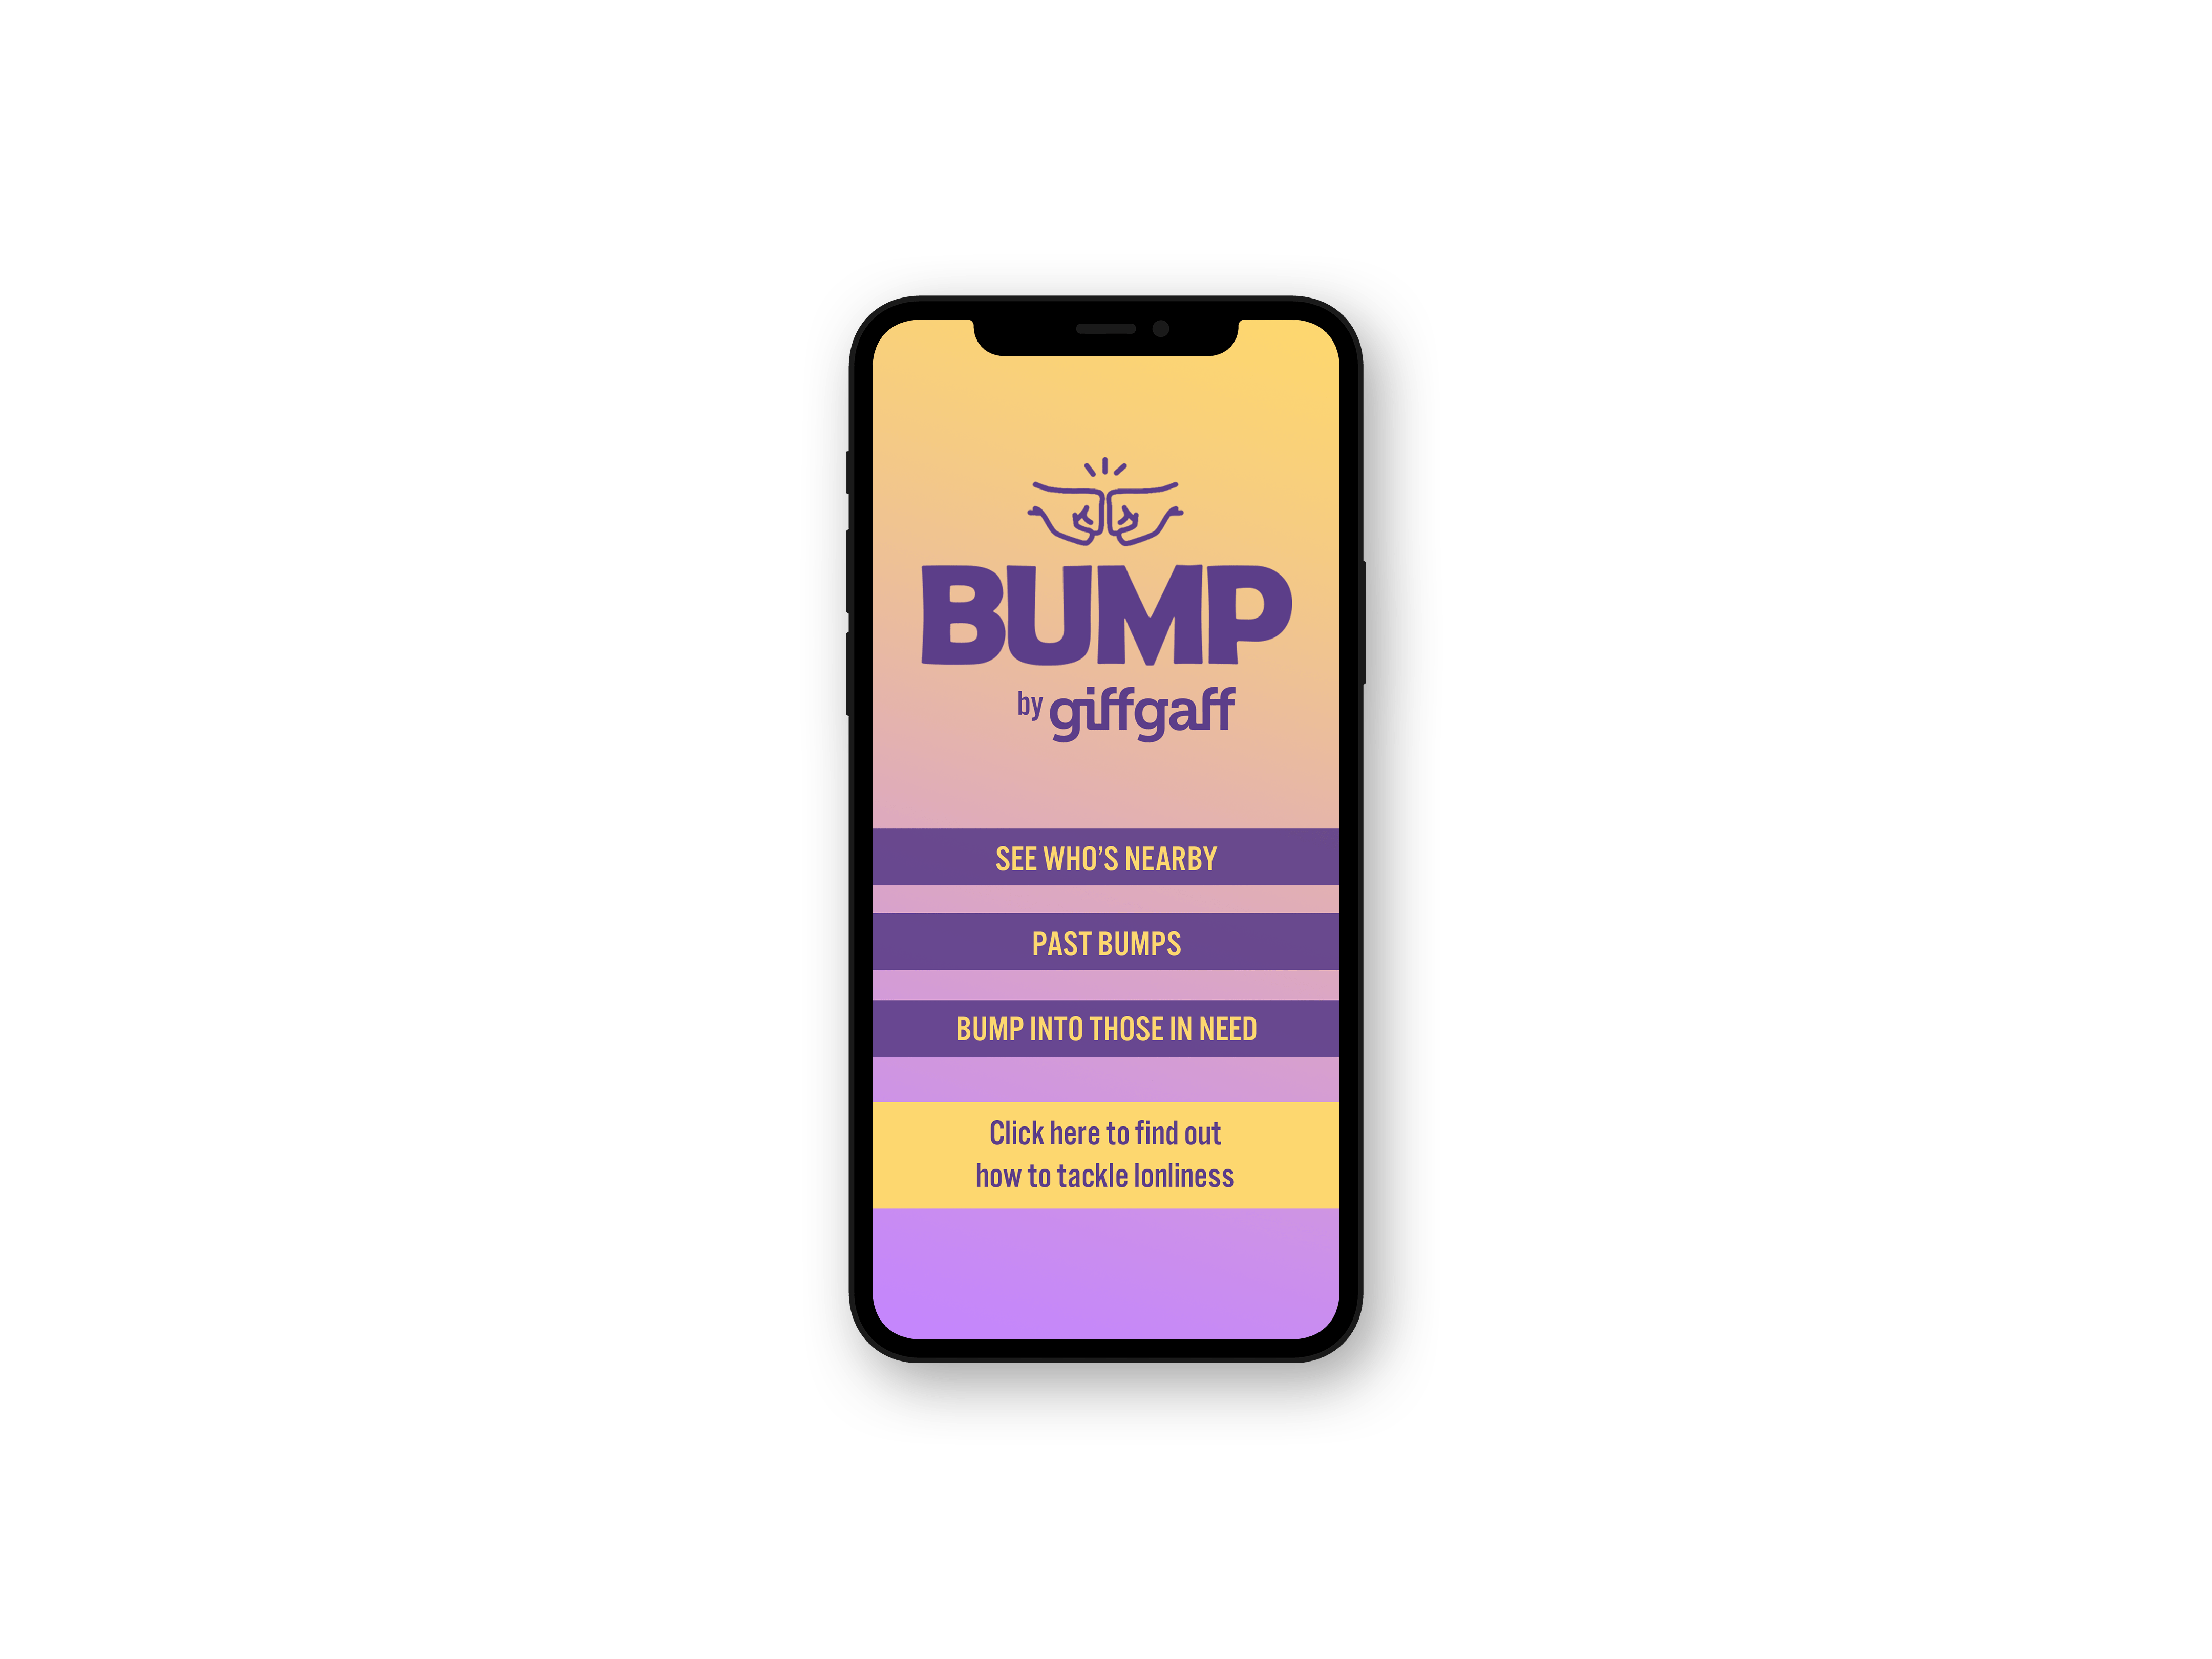 Mock up showing the bump app home screen.